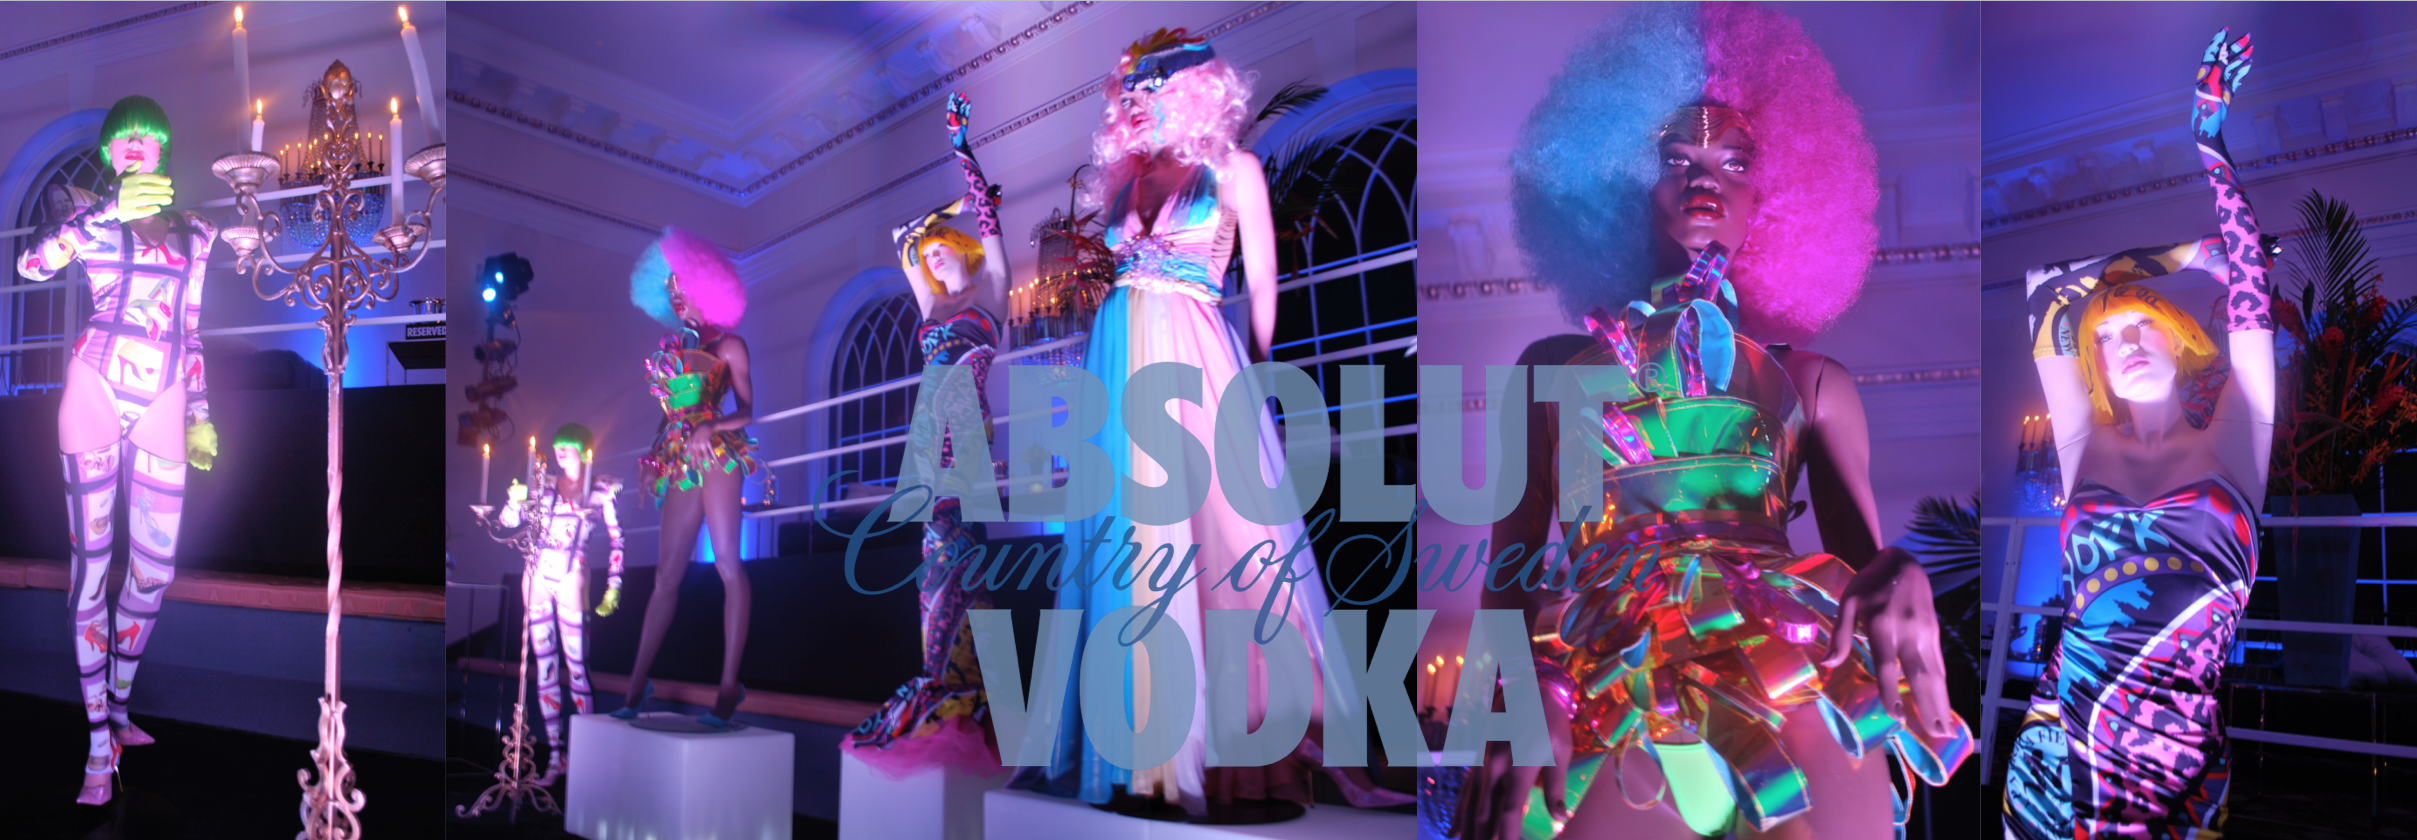 Absolute Vodka - 2009